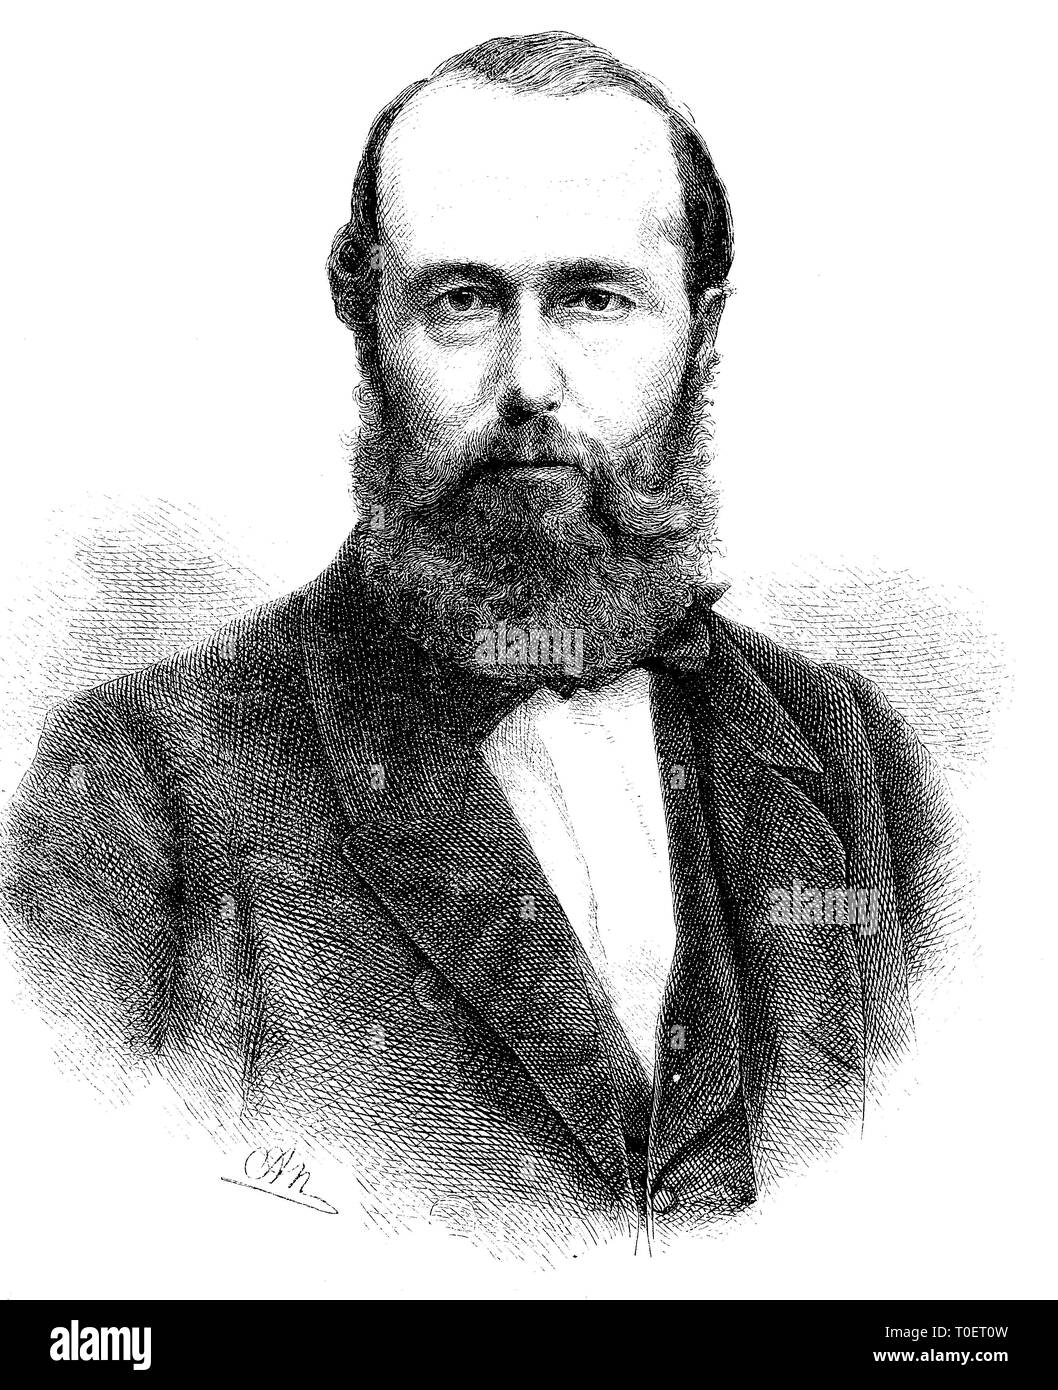 Rudolf von Bennigsen, born 1824, died 7 August 1902, German politicia; Germany  /  Rudolf von Bennigsen, geboren 1824, gestorben 1902, liberaler deutscher Politiker, Deutschland Stock Photo